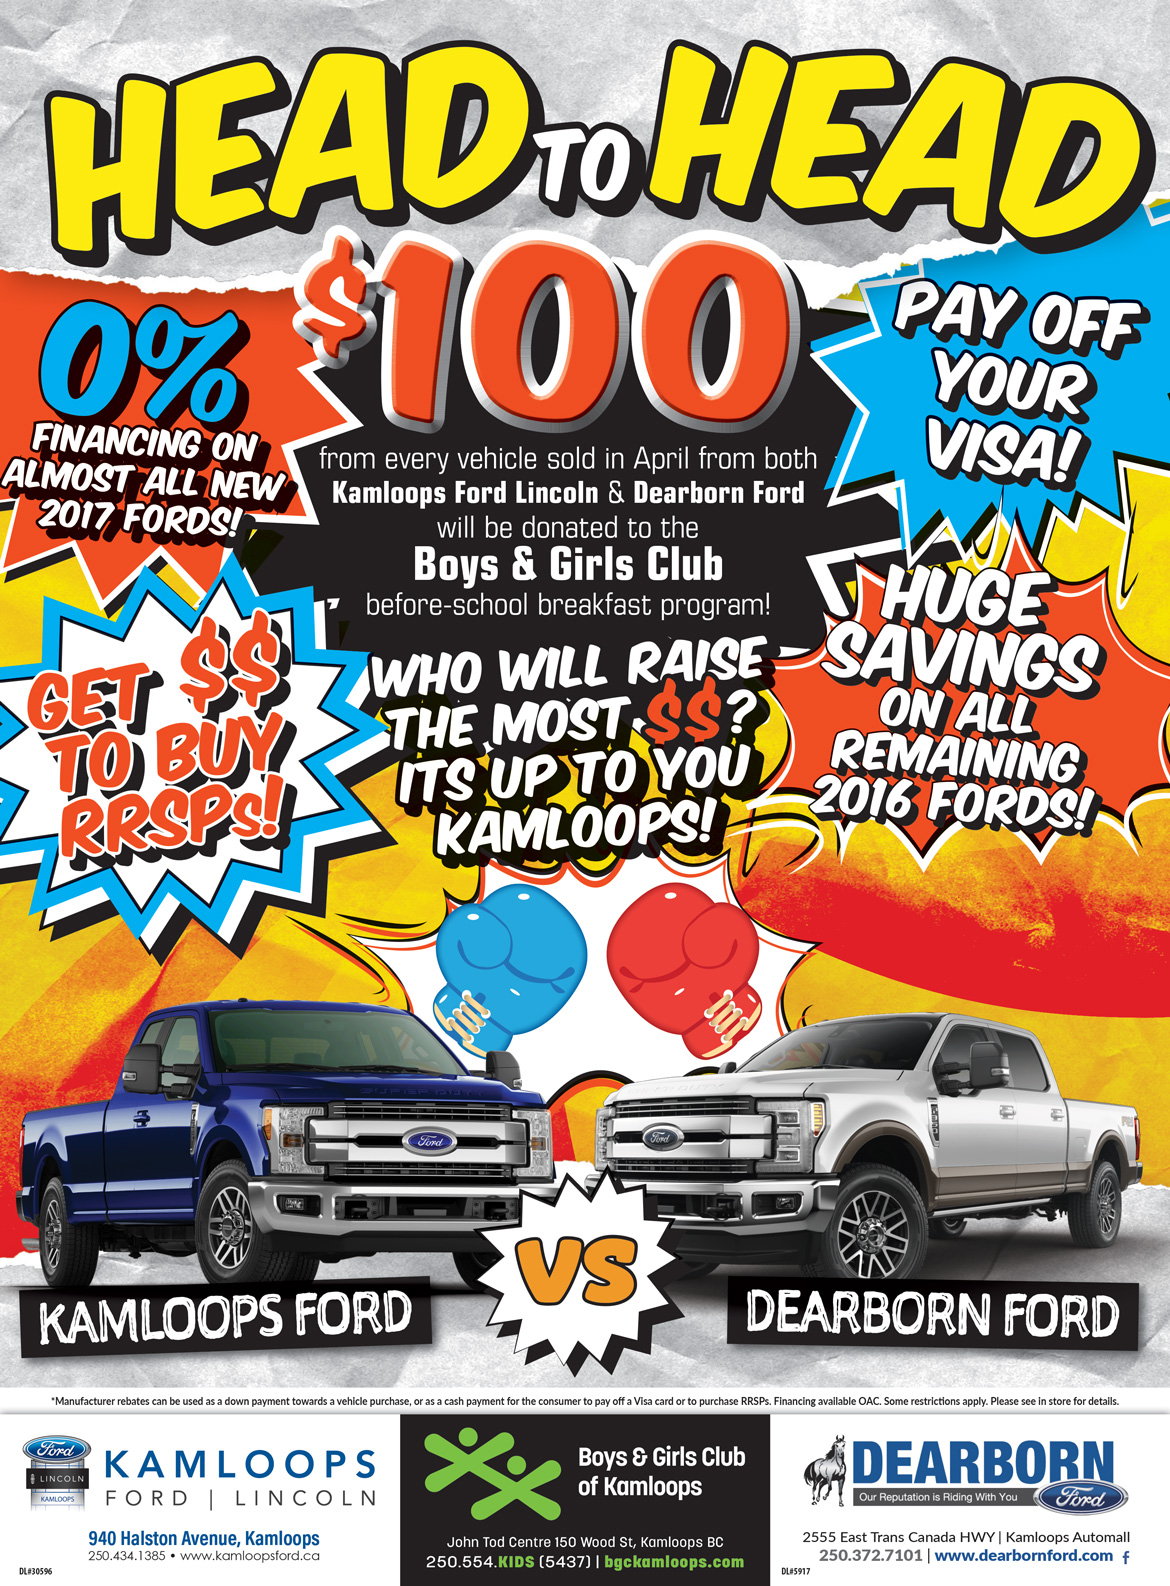 Head to Head Promotion